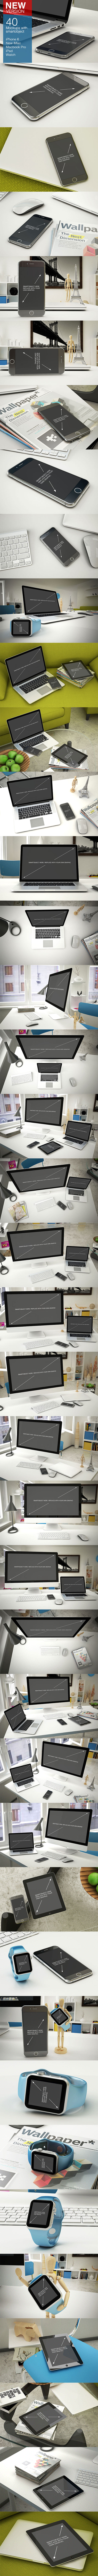 Apple Products PSD Mock-ups